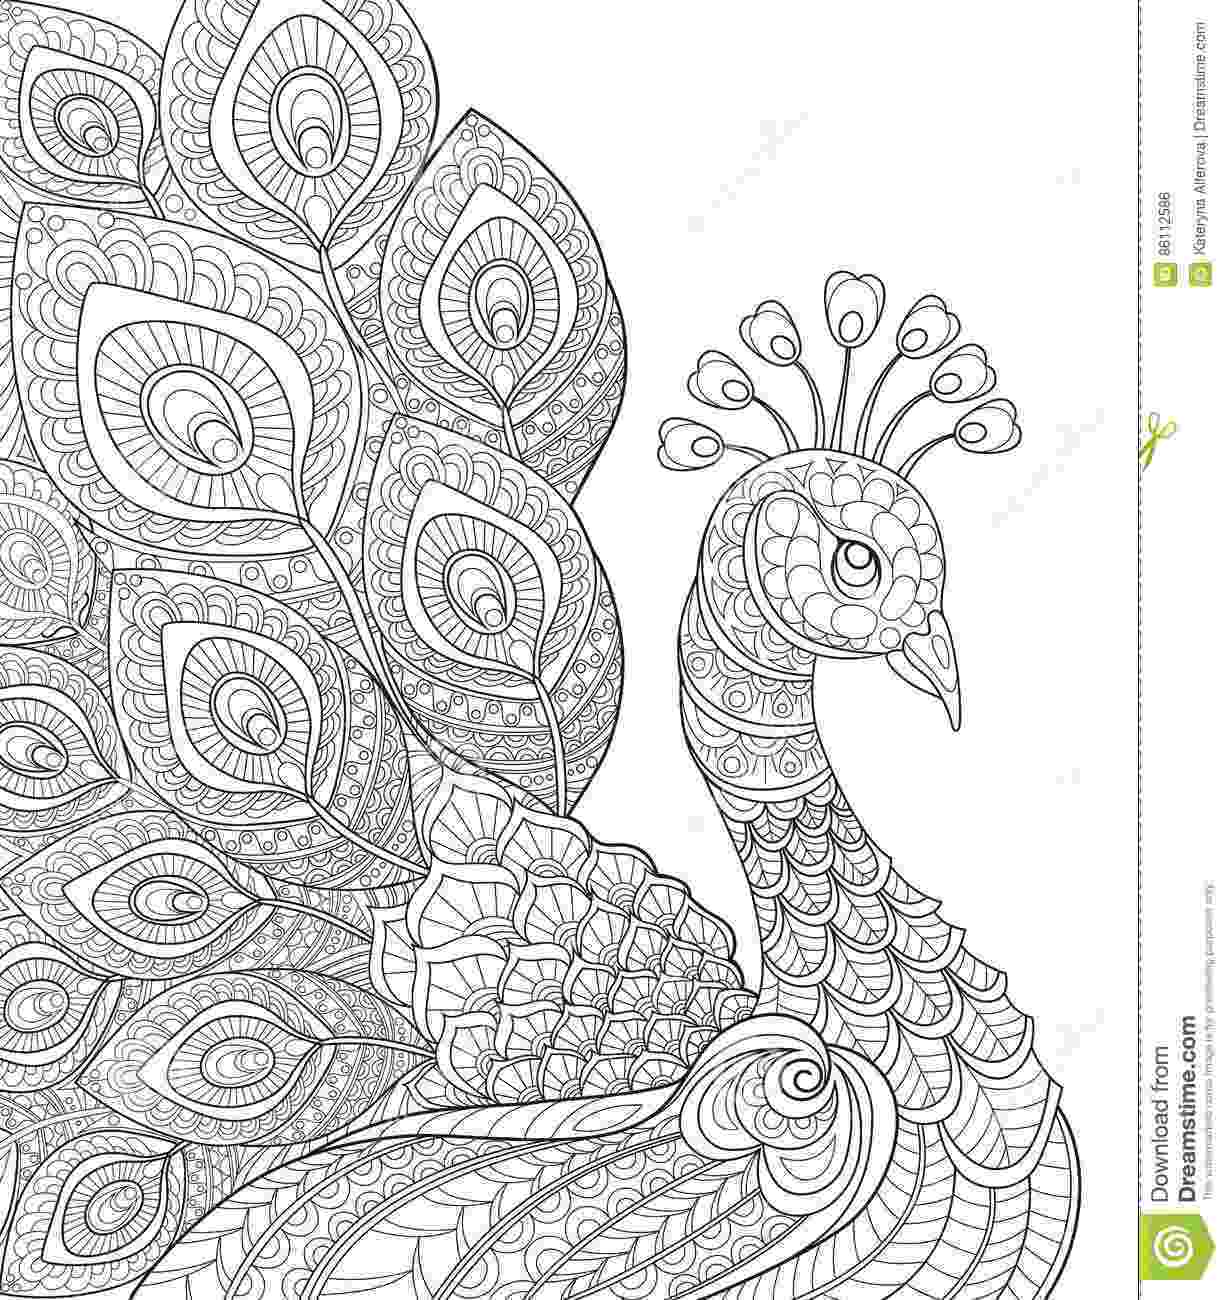 black and white coloring pages for adults insects coloring pages for adults coloring adult black for coloring white pages adults and